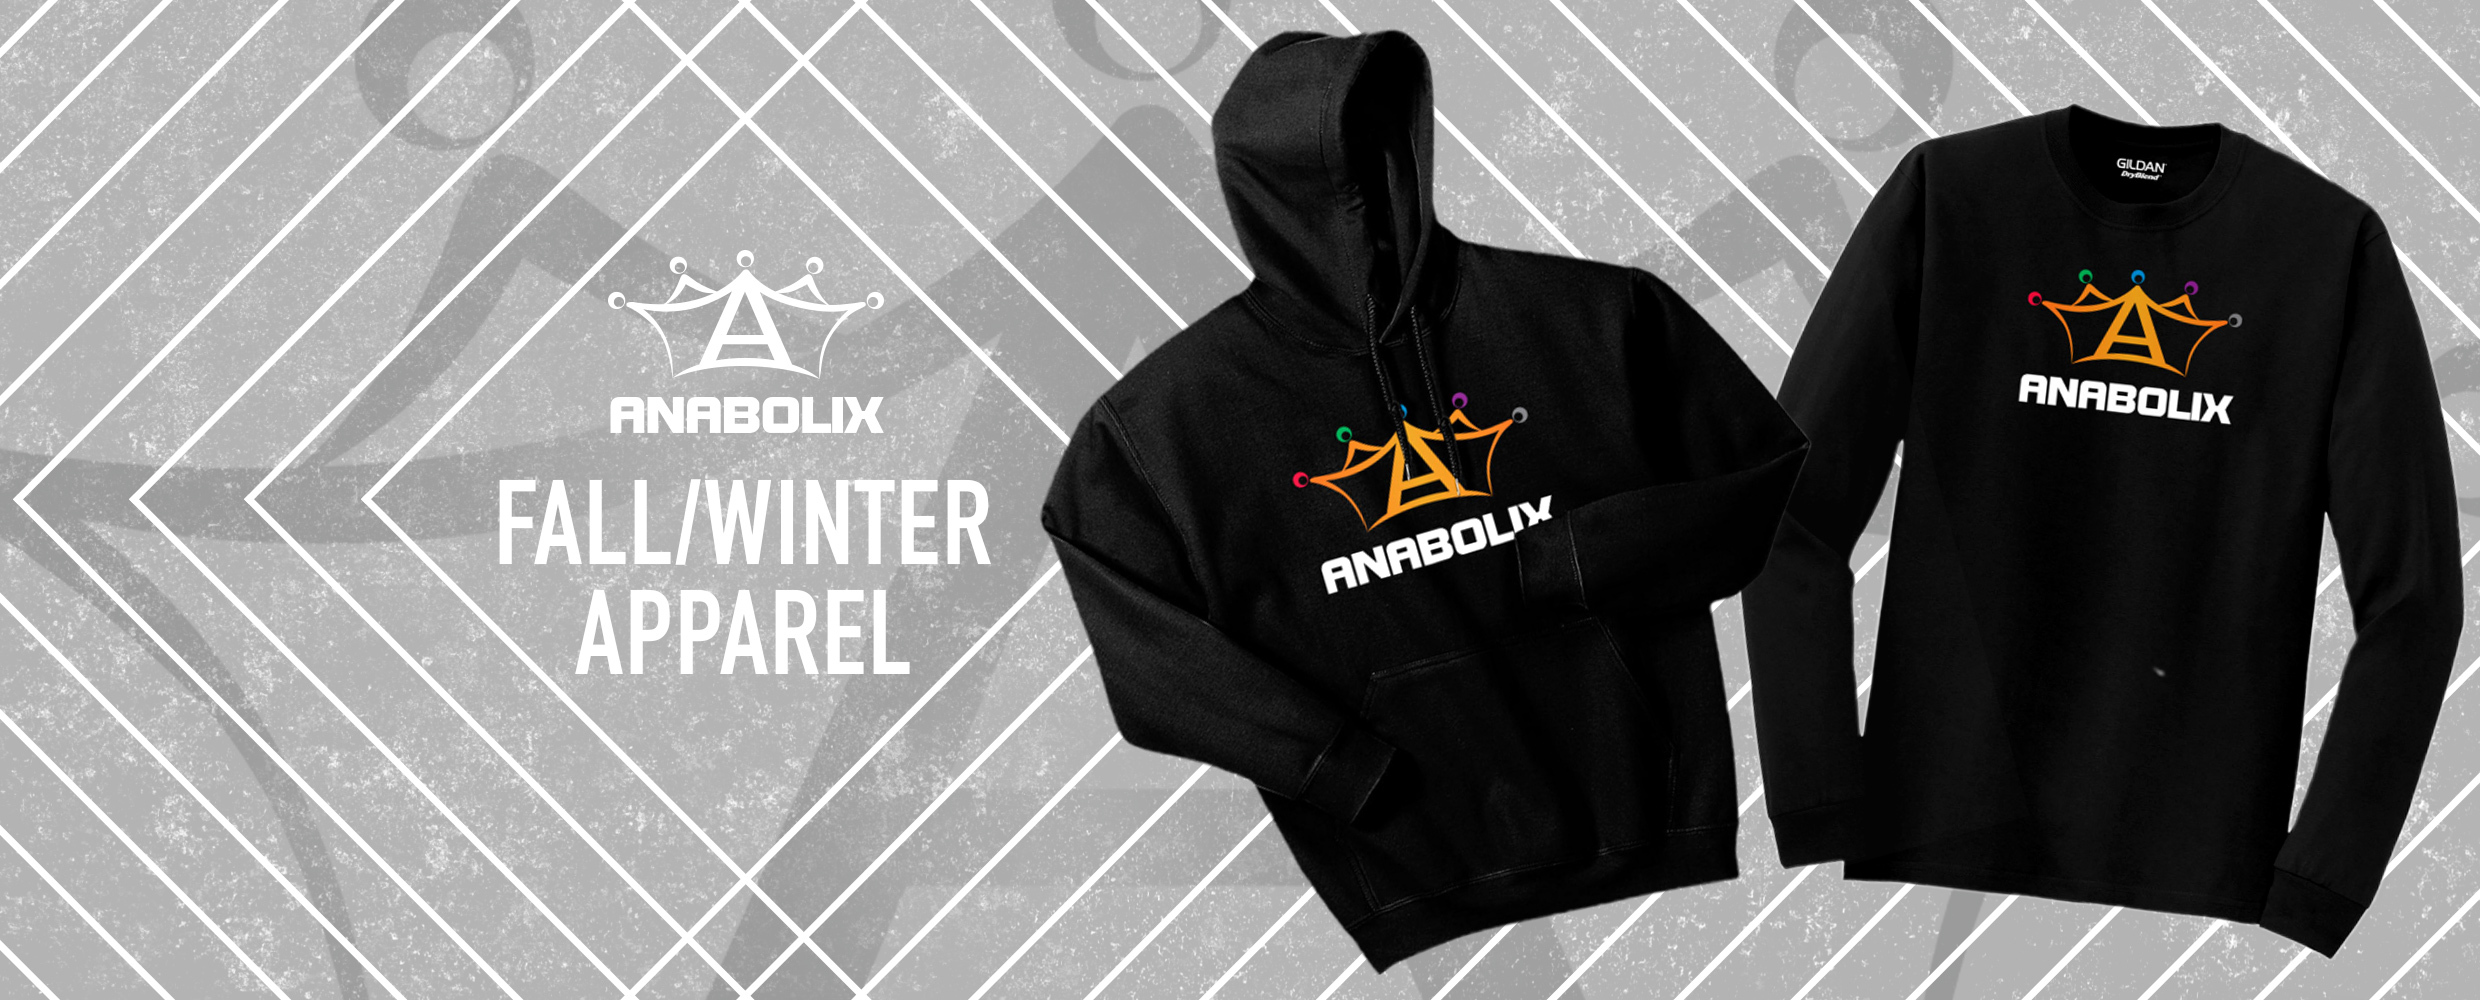 Anabolix fall and winter apparel